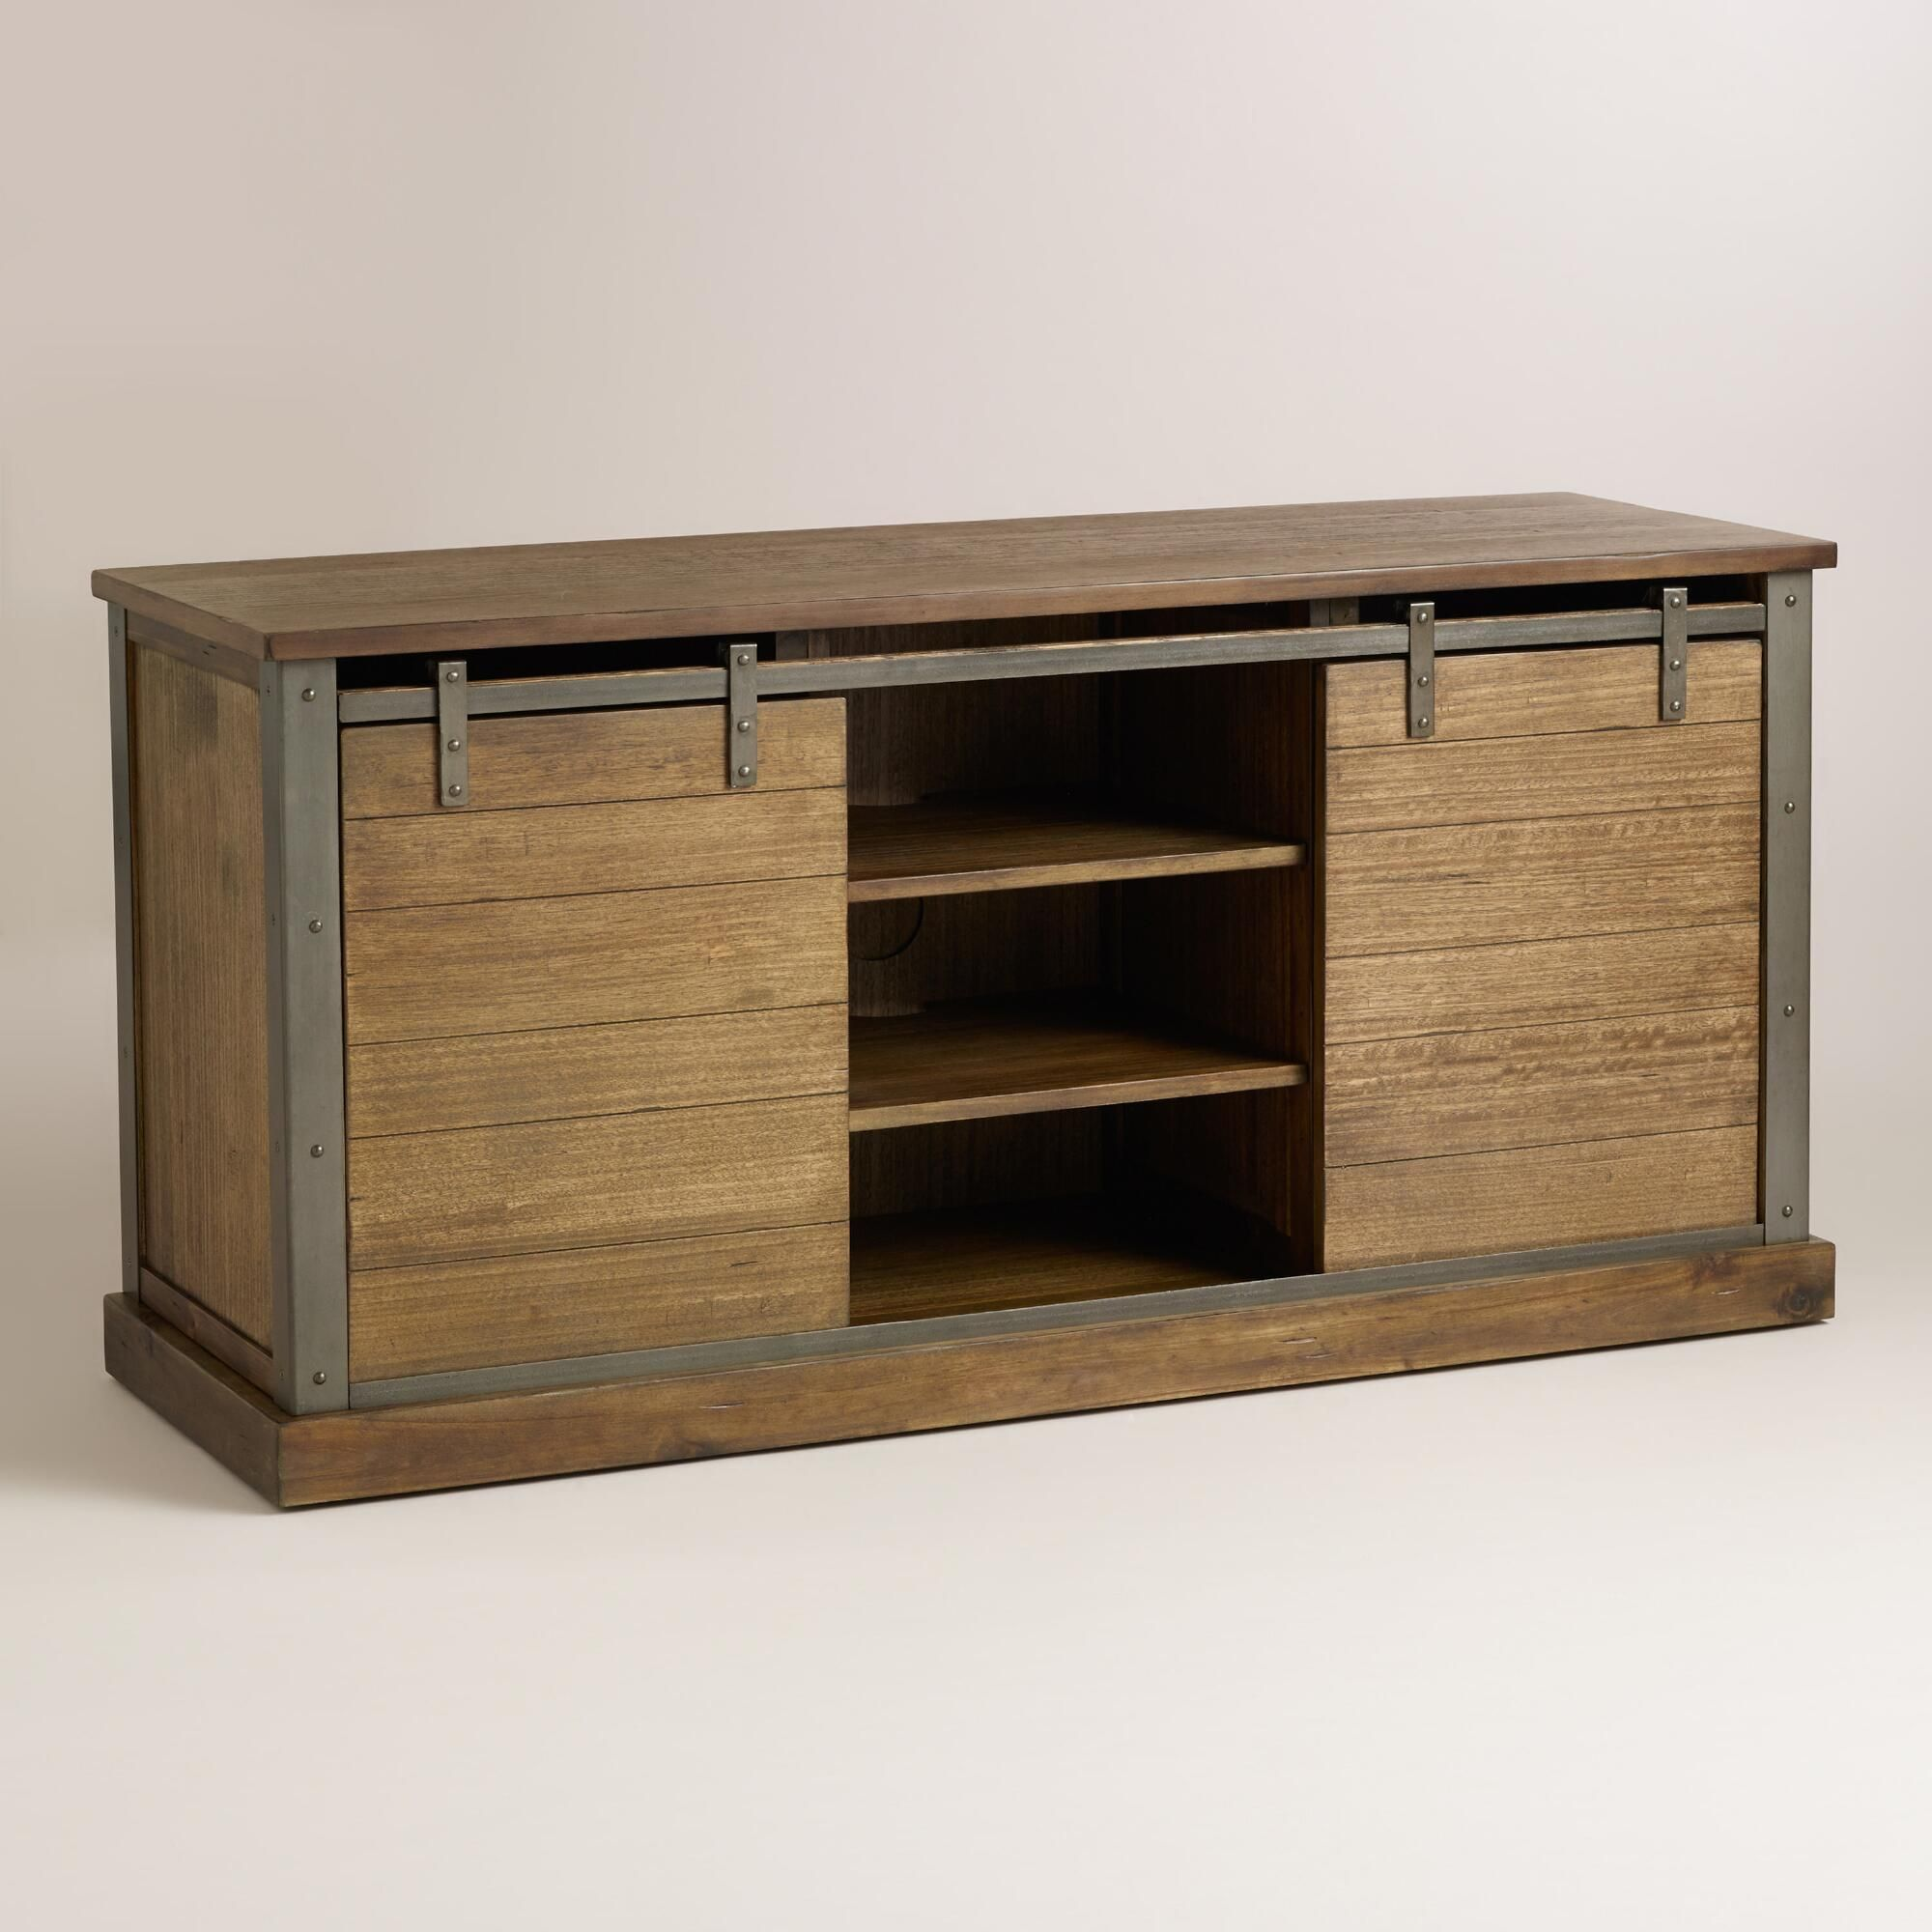 Sliding Barn Door Console Cabinet: Inspired By Doors Found On Old Barns, Our Rustic Media